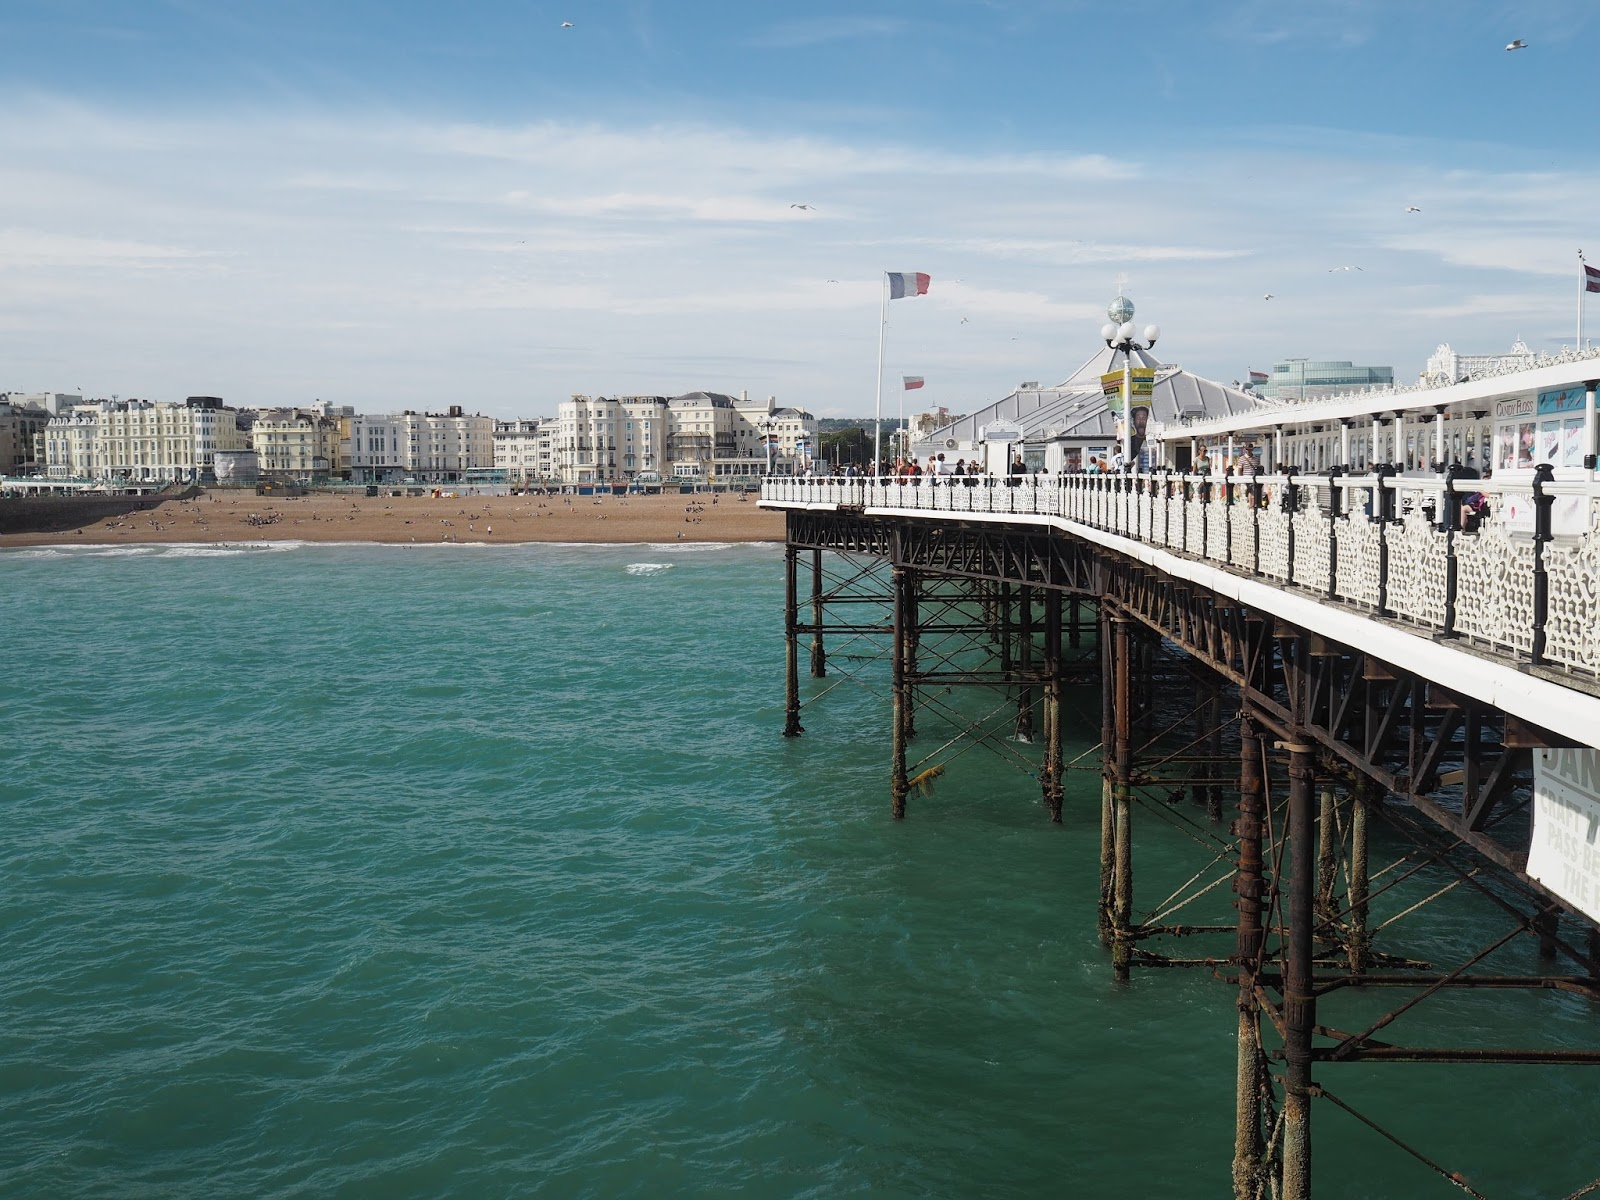 Brighton seafront viewed from Brighton Palace Pier